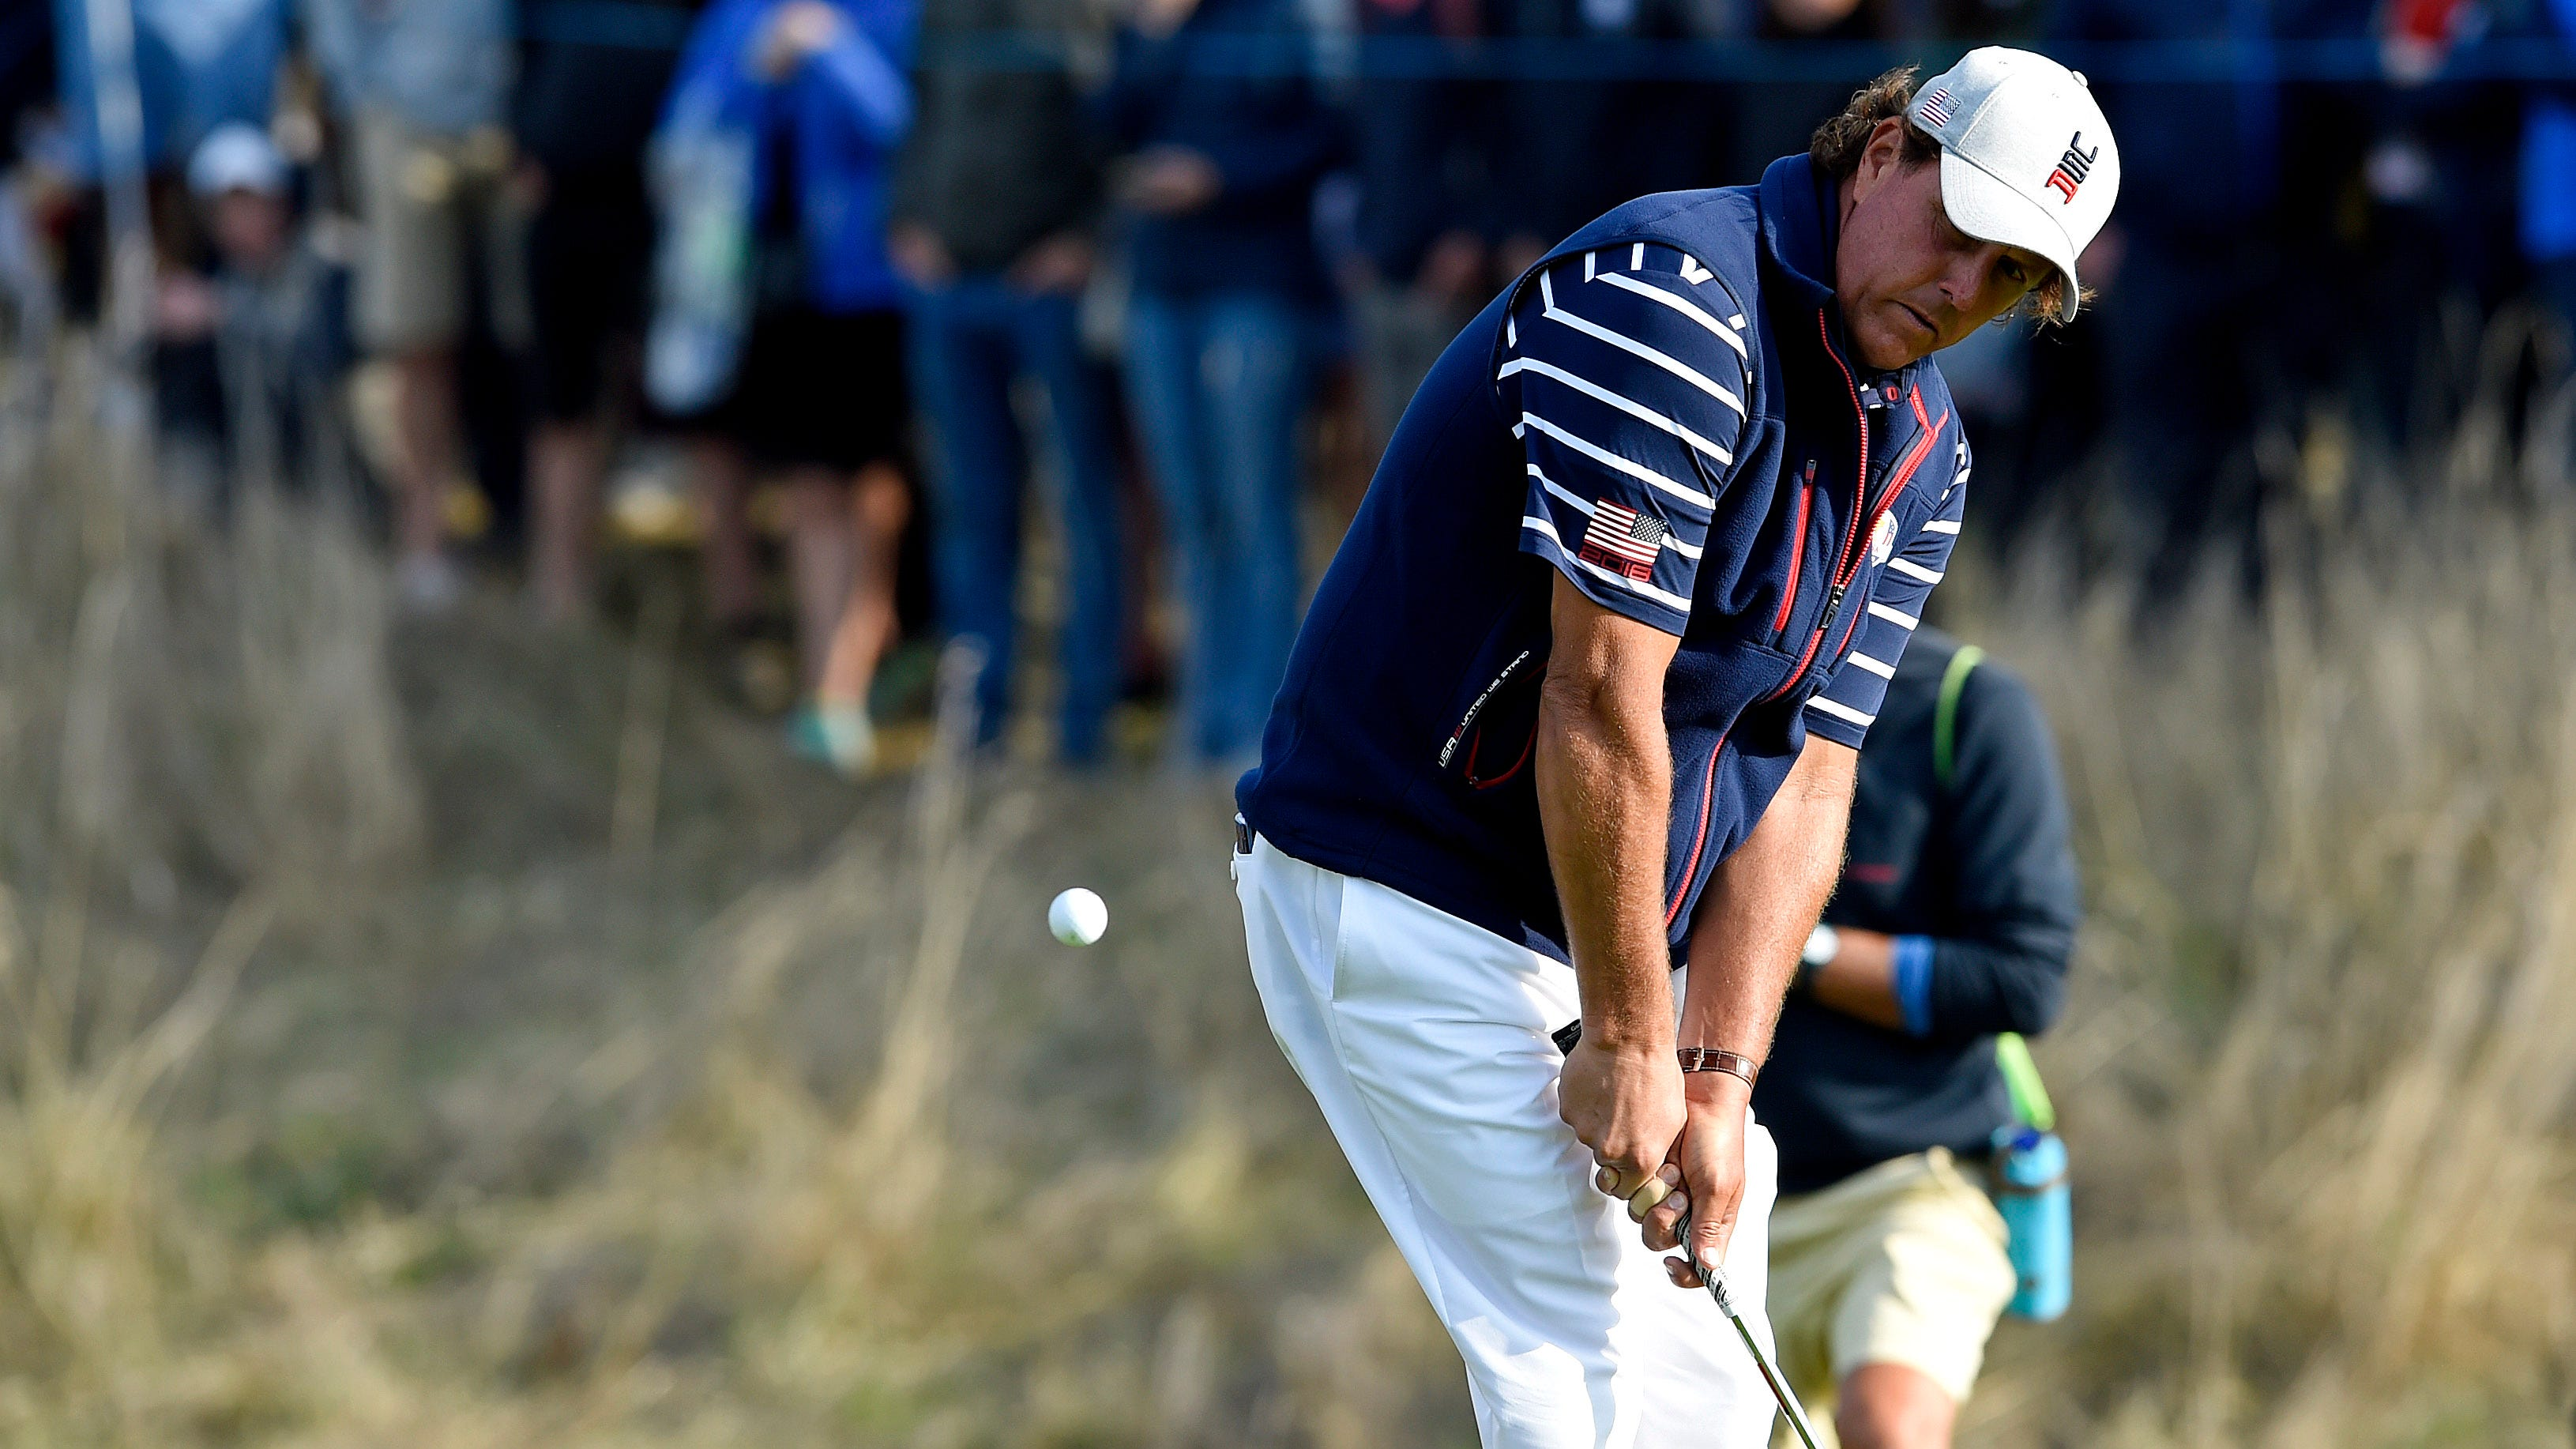 Phil Mickelson, coming off winless Ryder Cup, tees off season at Safeway Open